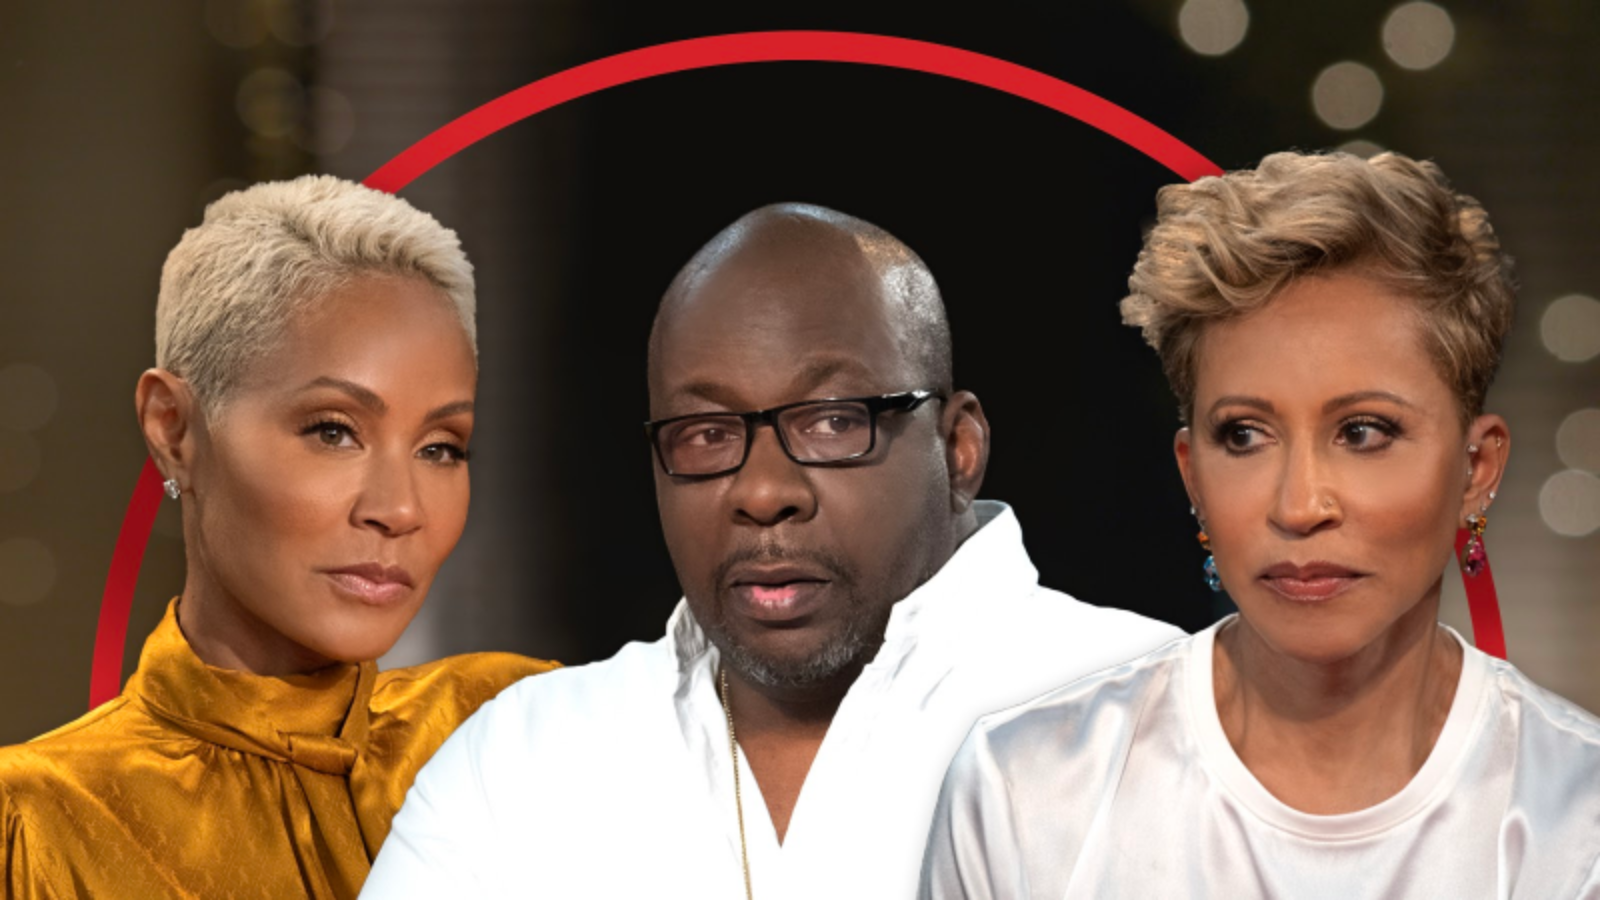 Bobby Brown to Discuss Whitney Houston and the Deaths of His Kids on 'Red Table Talk'